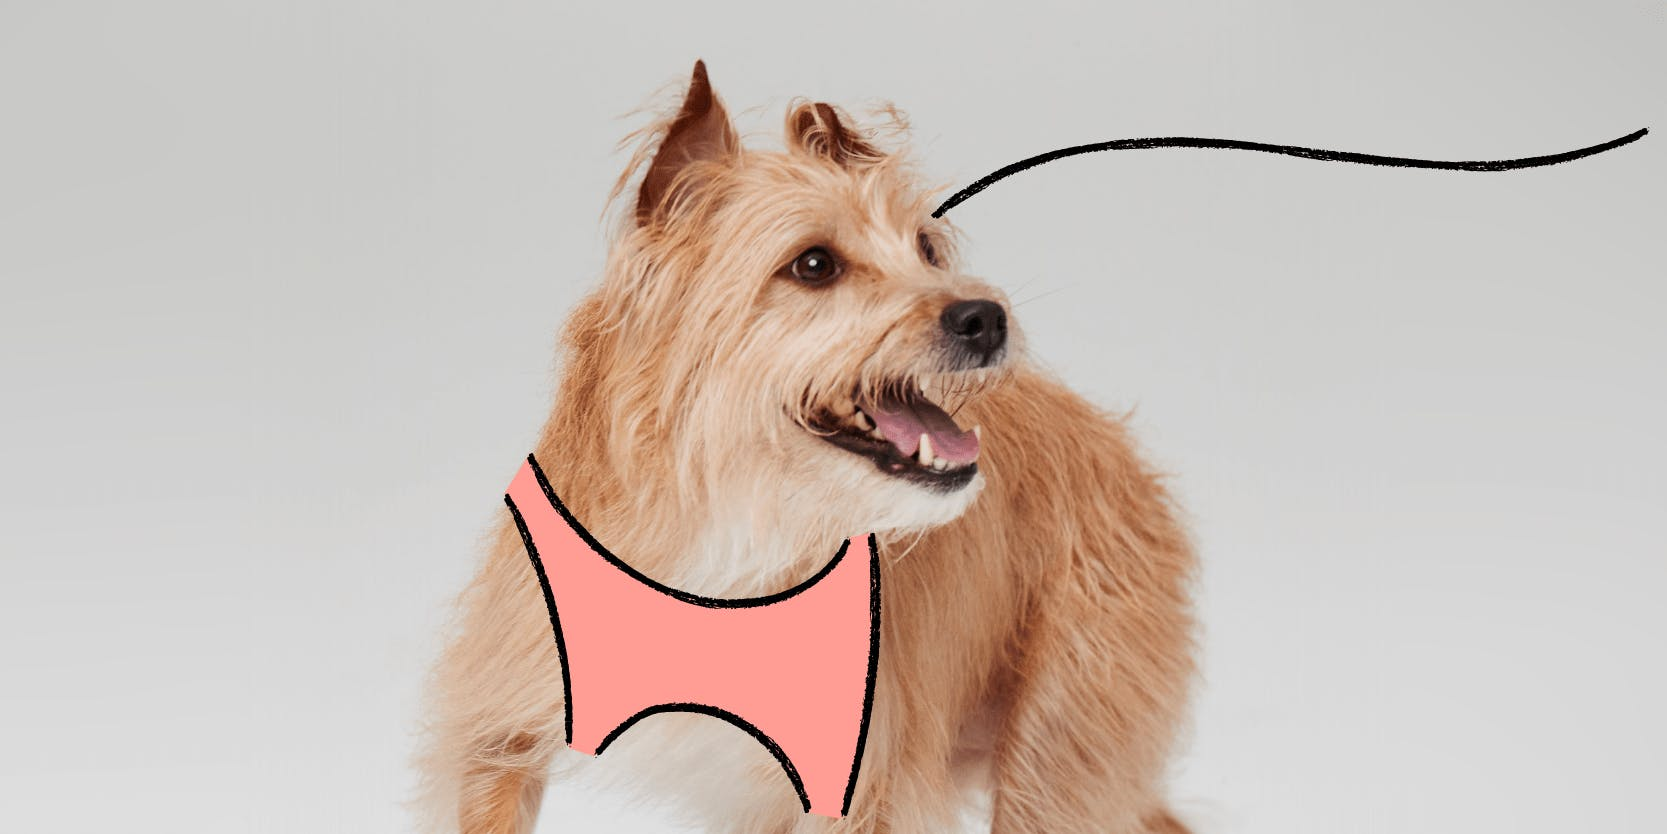 Dog with harness and leash